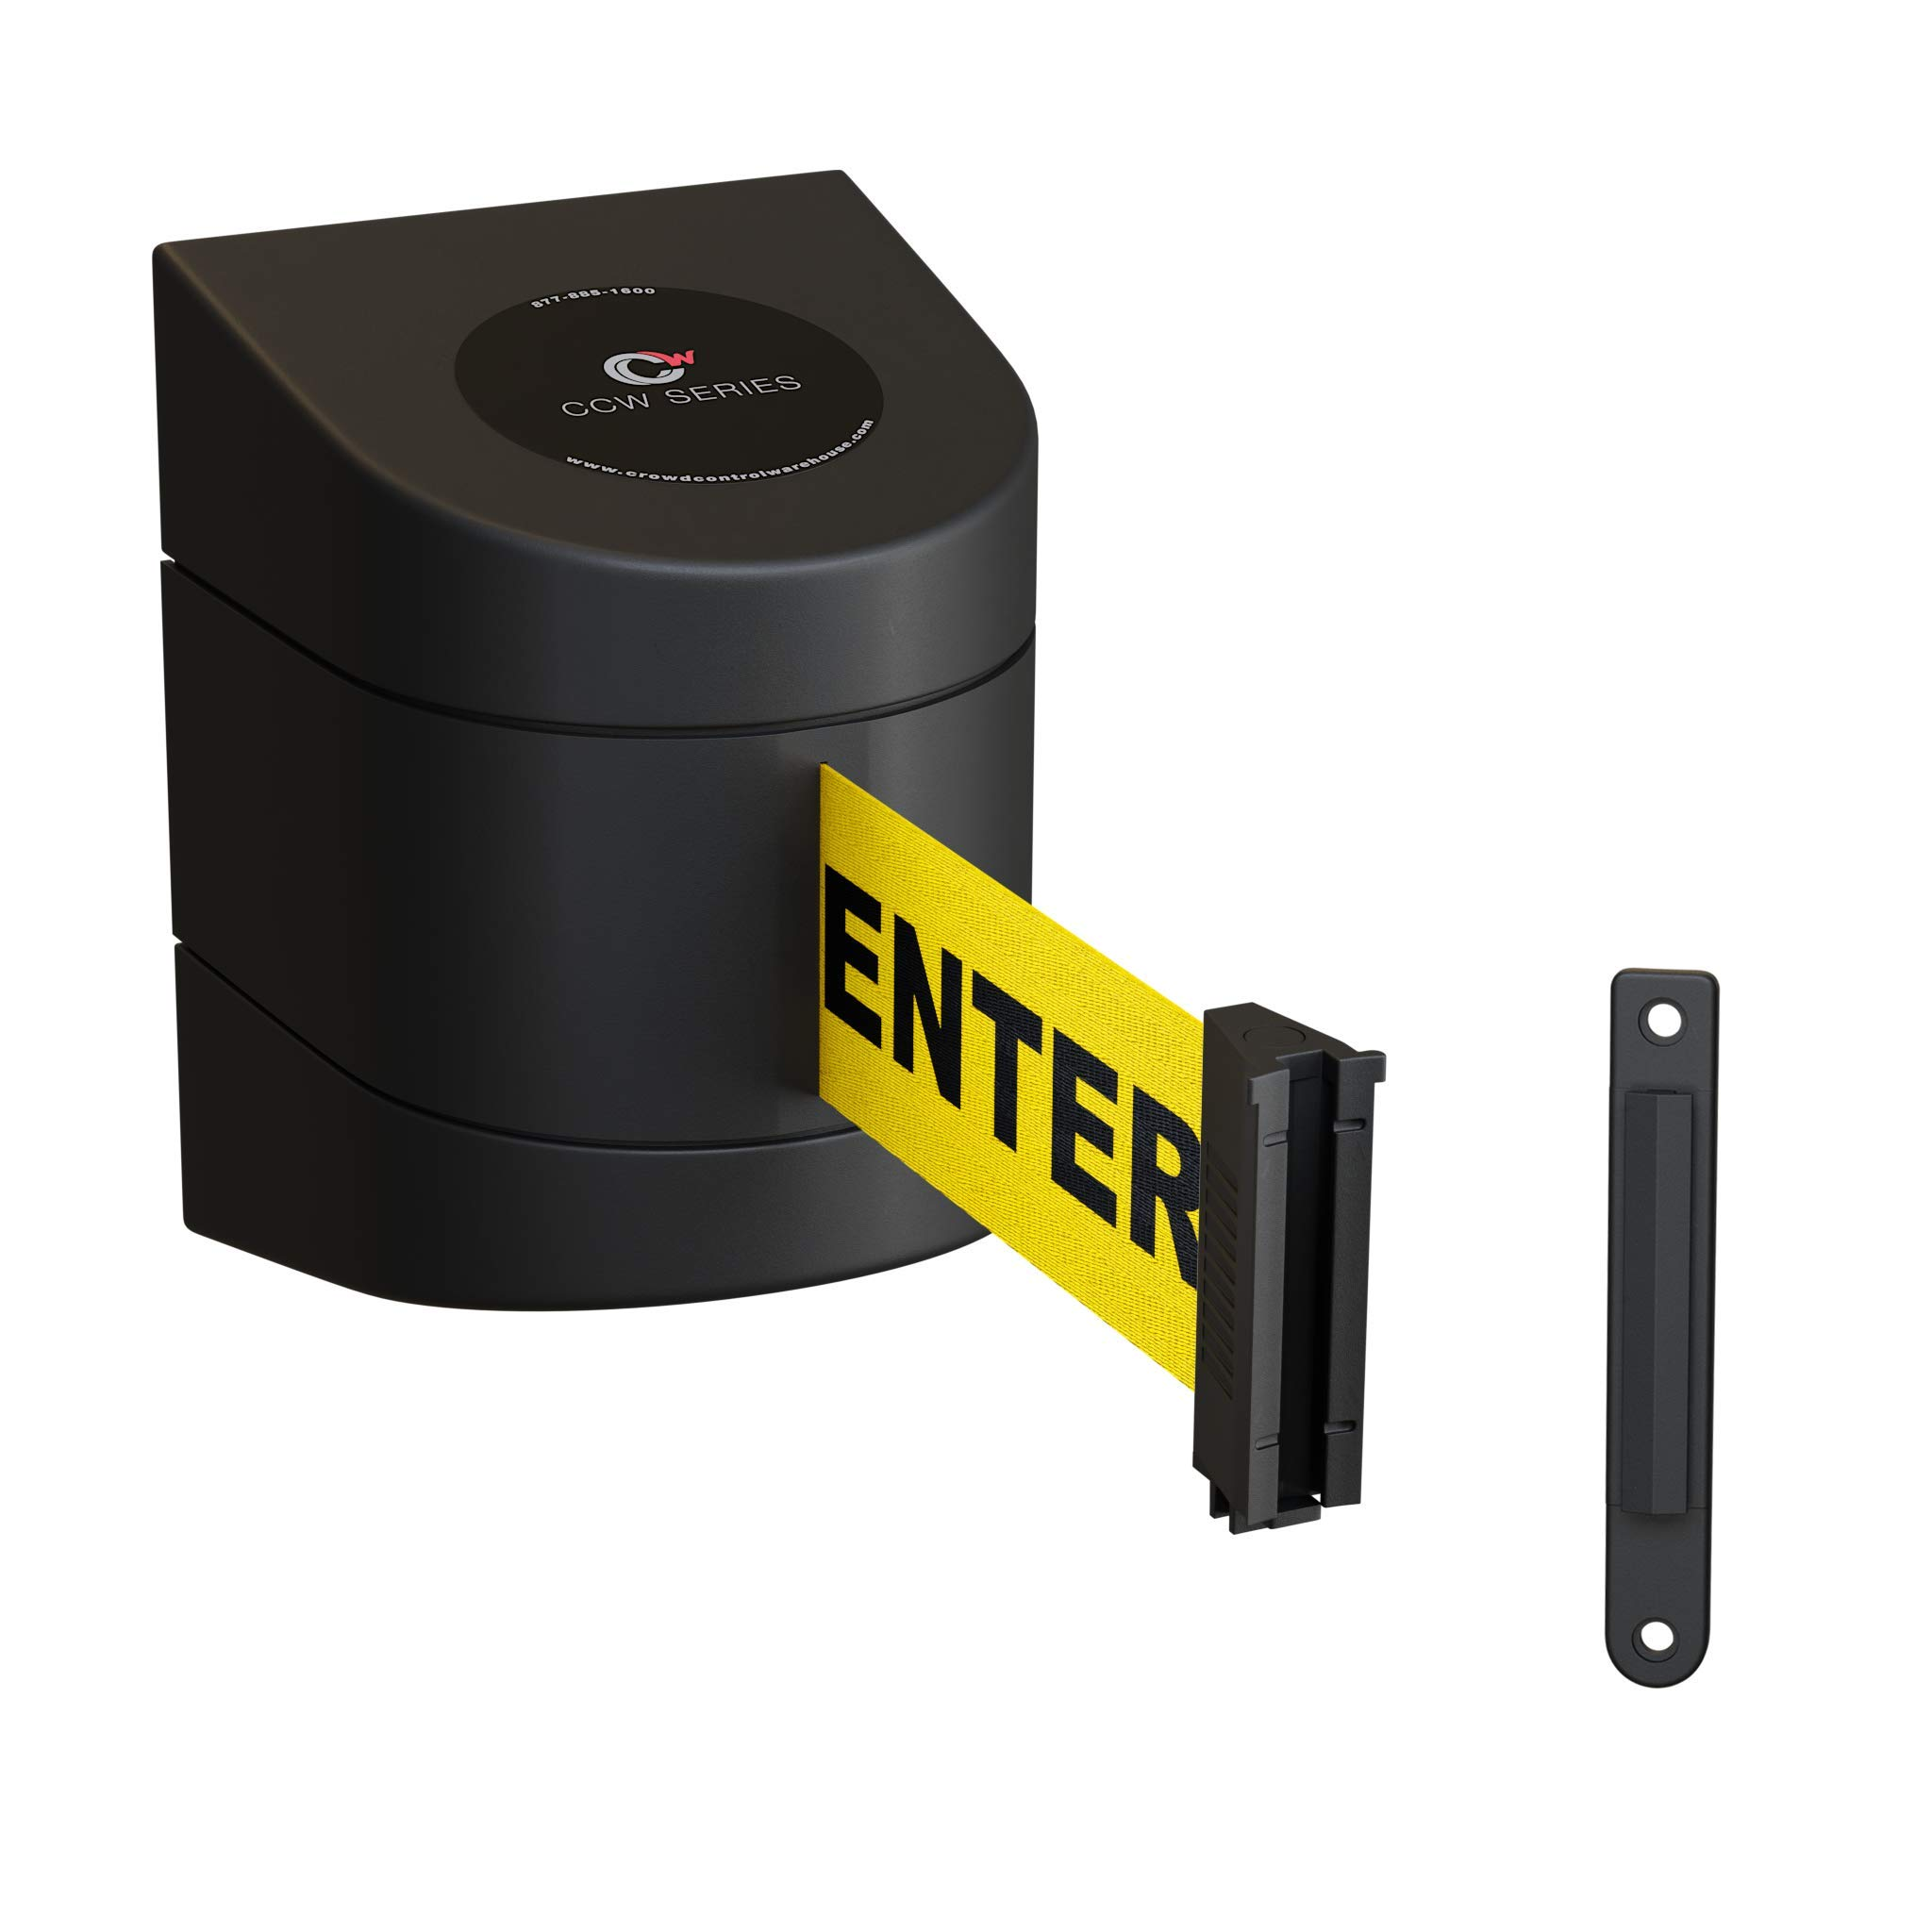 Fixed Wall Mount Retractable Belt Barrier with ABS Case-CCW Series WMB-220 (15 Foot, Caution Do Not Enter Belt with Black ABS Case) by Crowd Control Warehouse